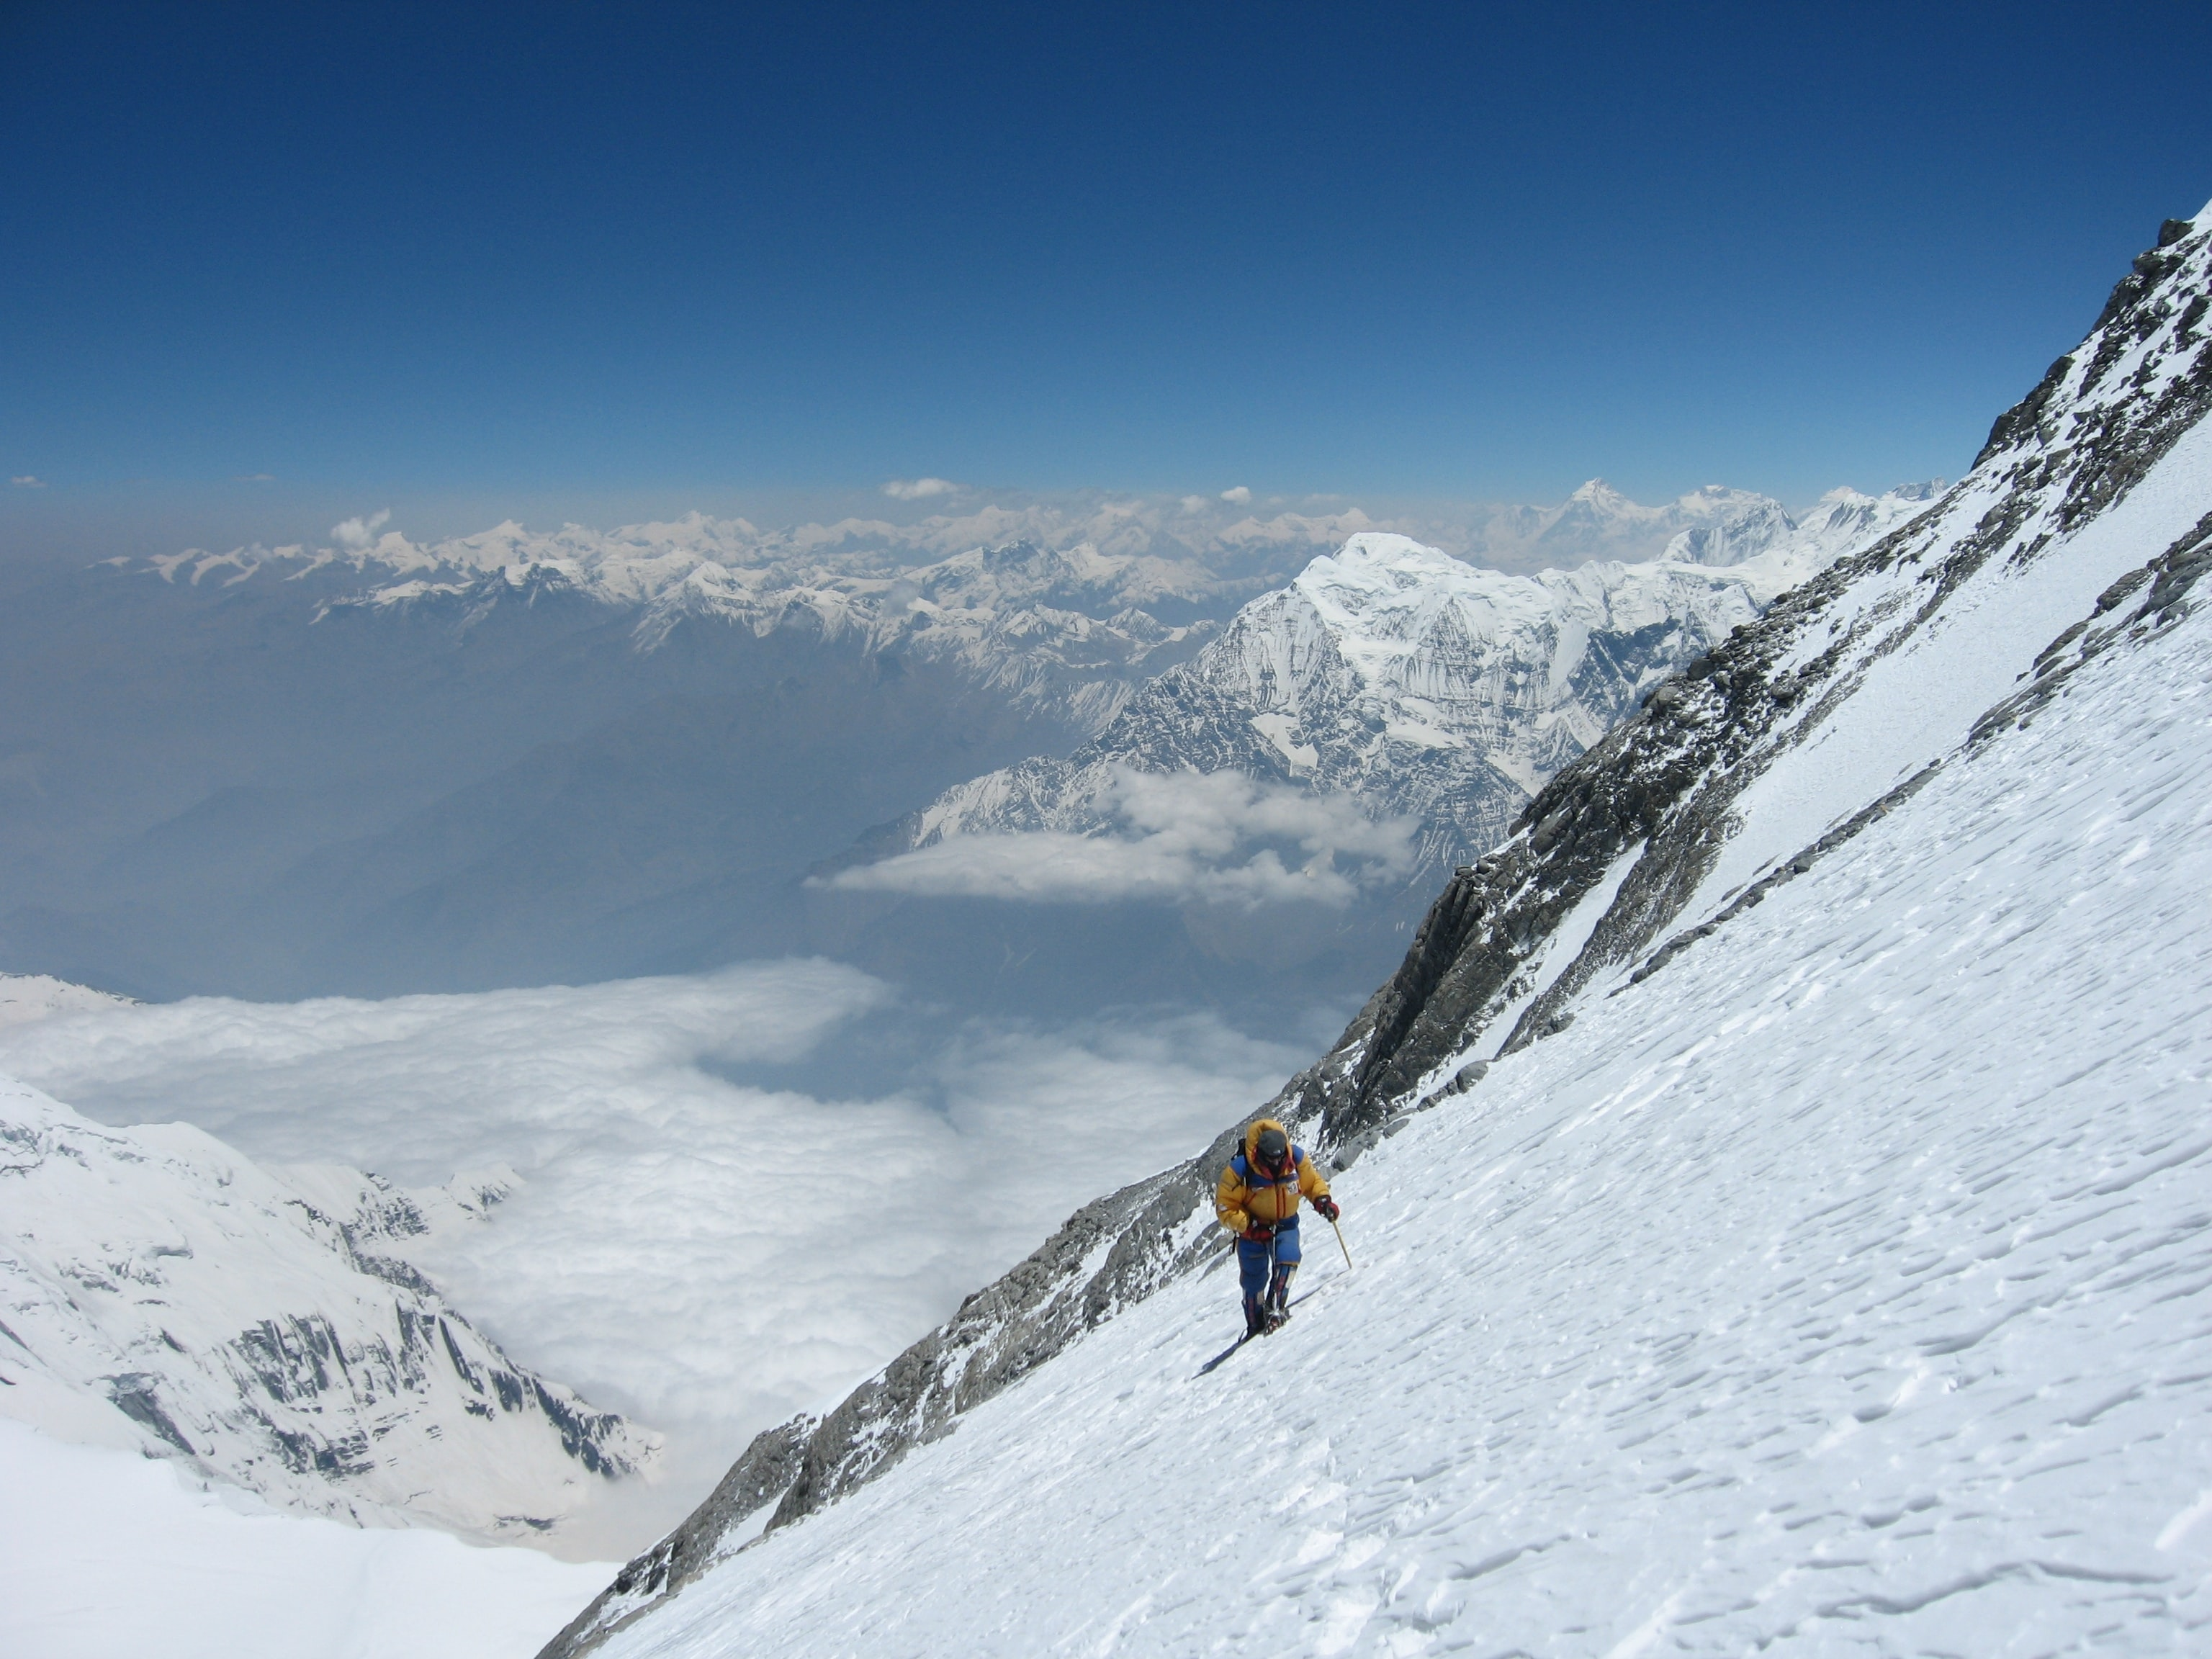 Extreme hiker ascends a snow covered mountain landscape